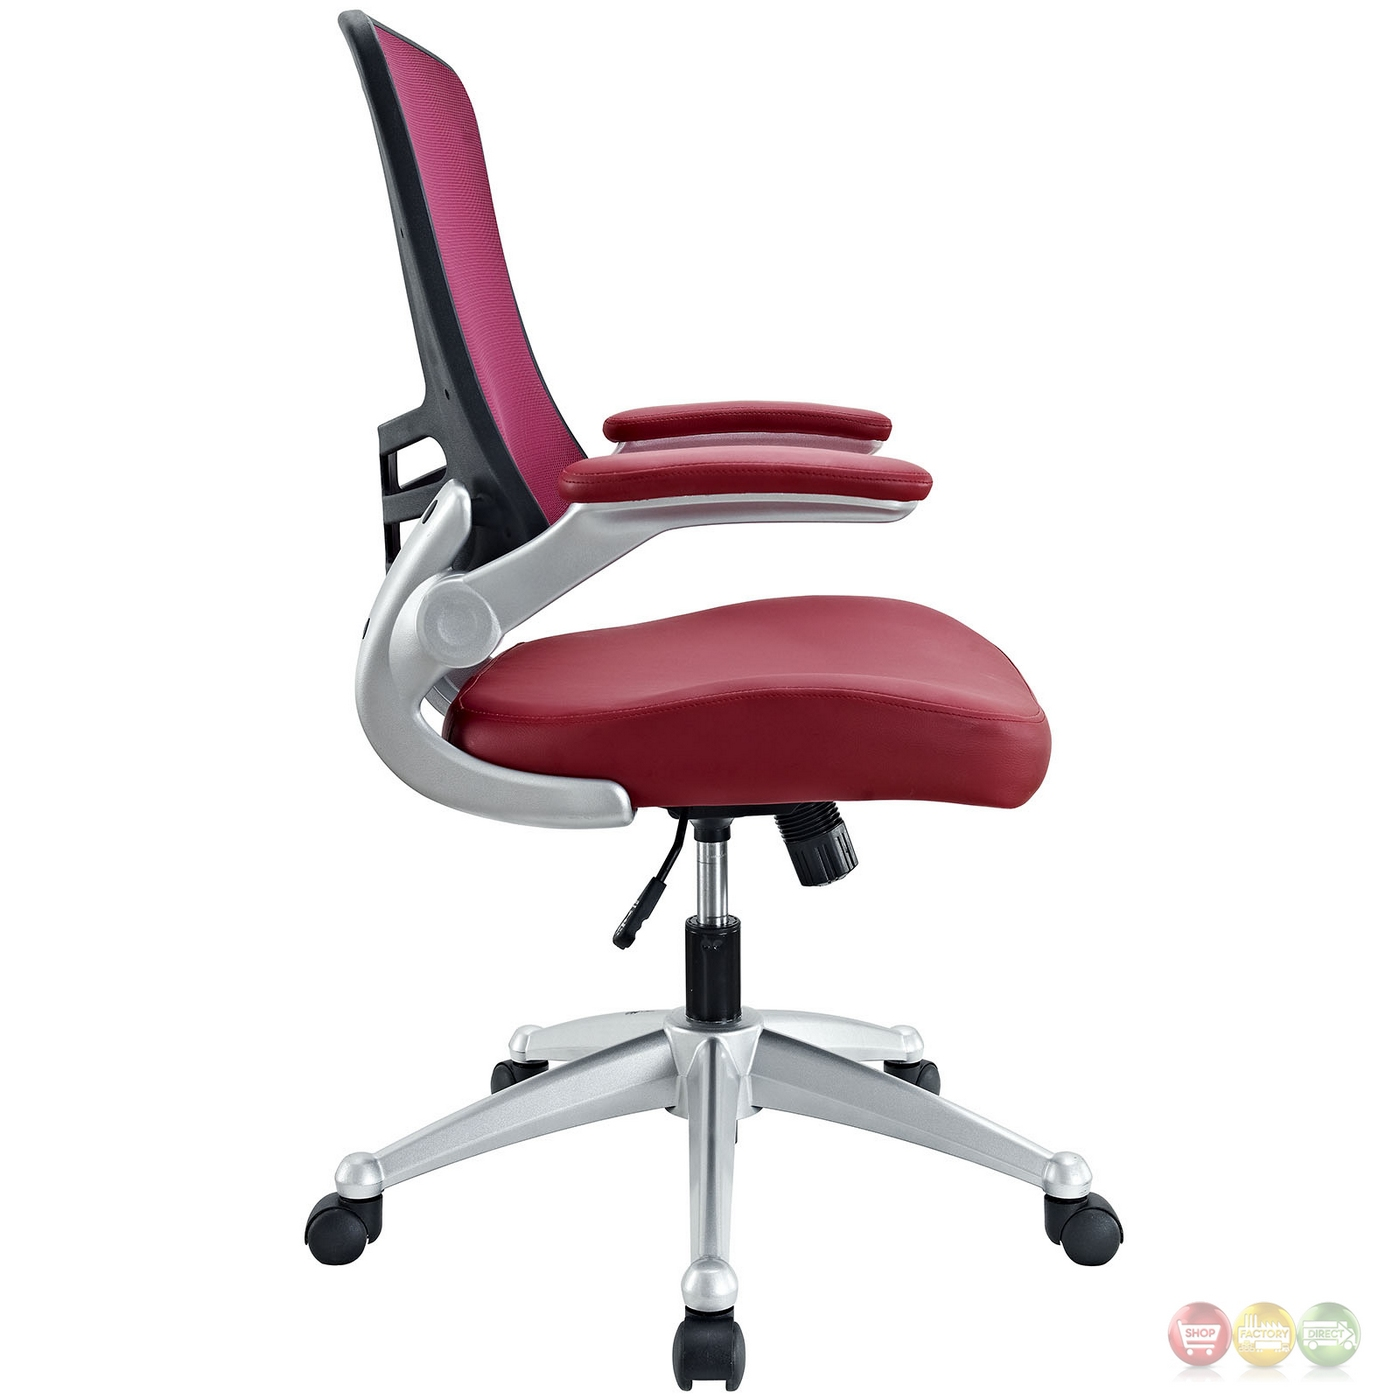 Burgundy Office Chair Attainment Modern Ergonomic Mesh Back Office Chair W